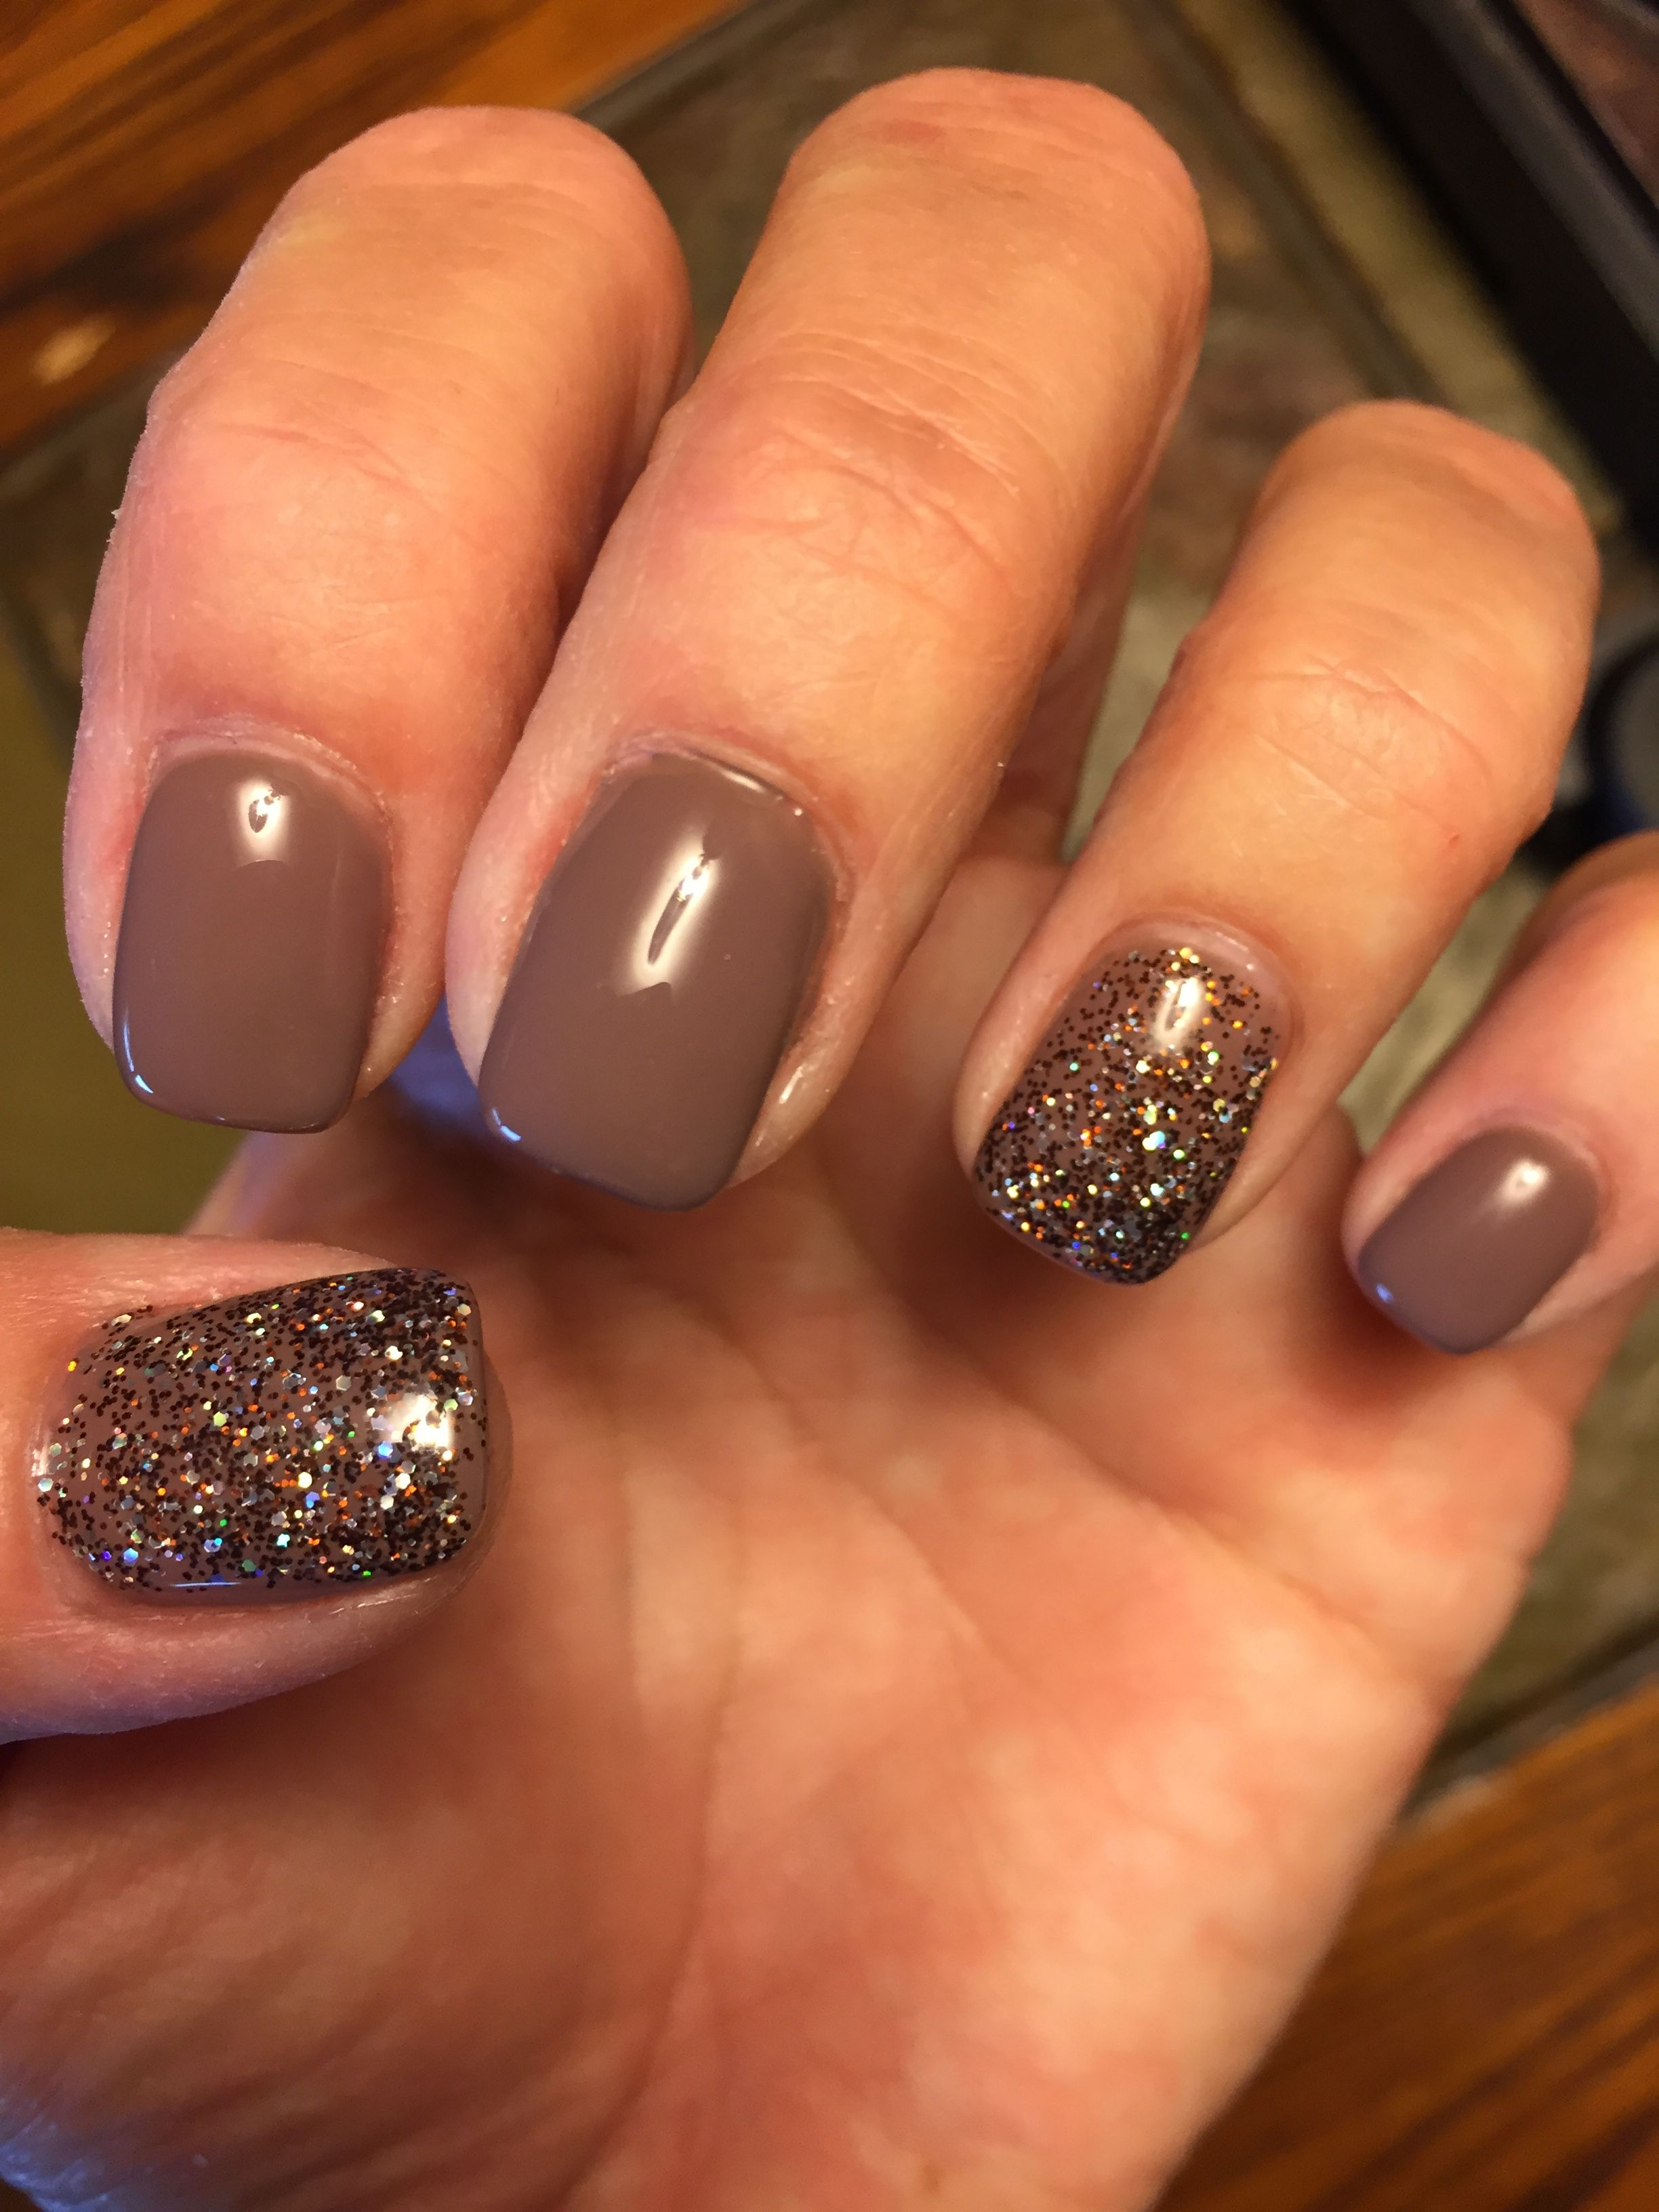 Idea By Courtney J On Nails In 2020 Fall Gel Nails Powder Nails